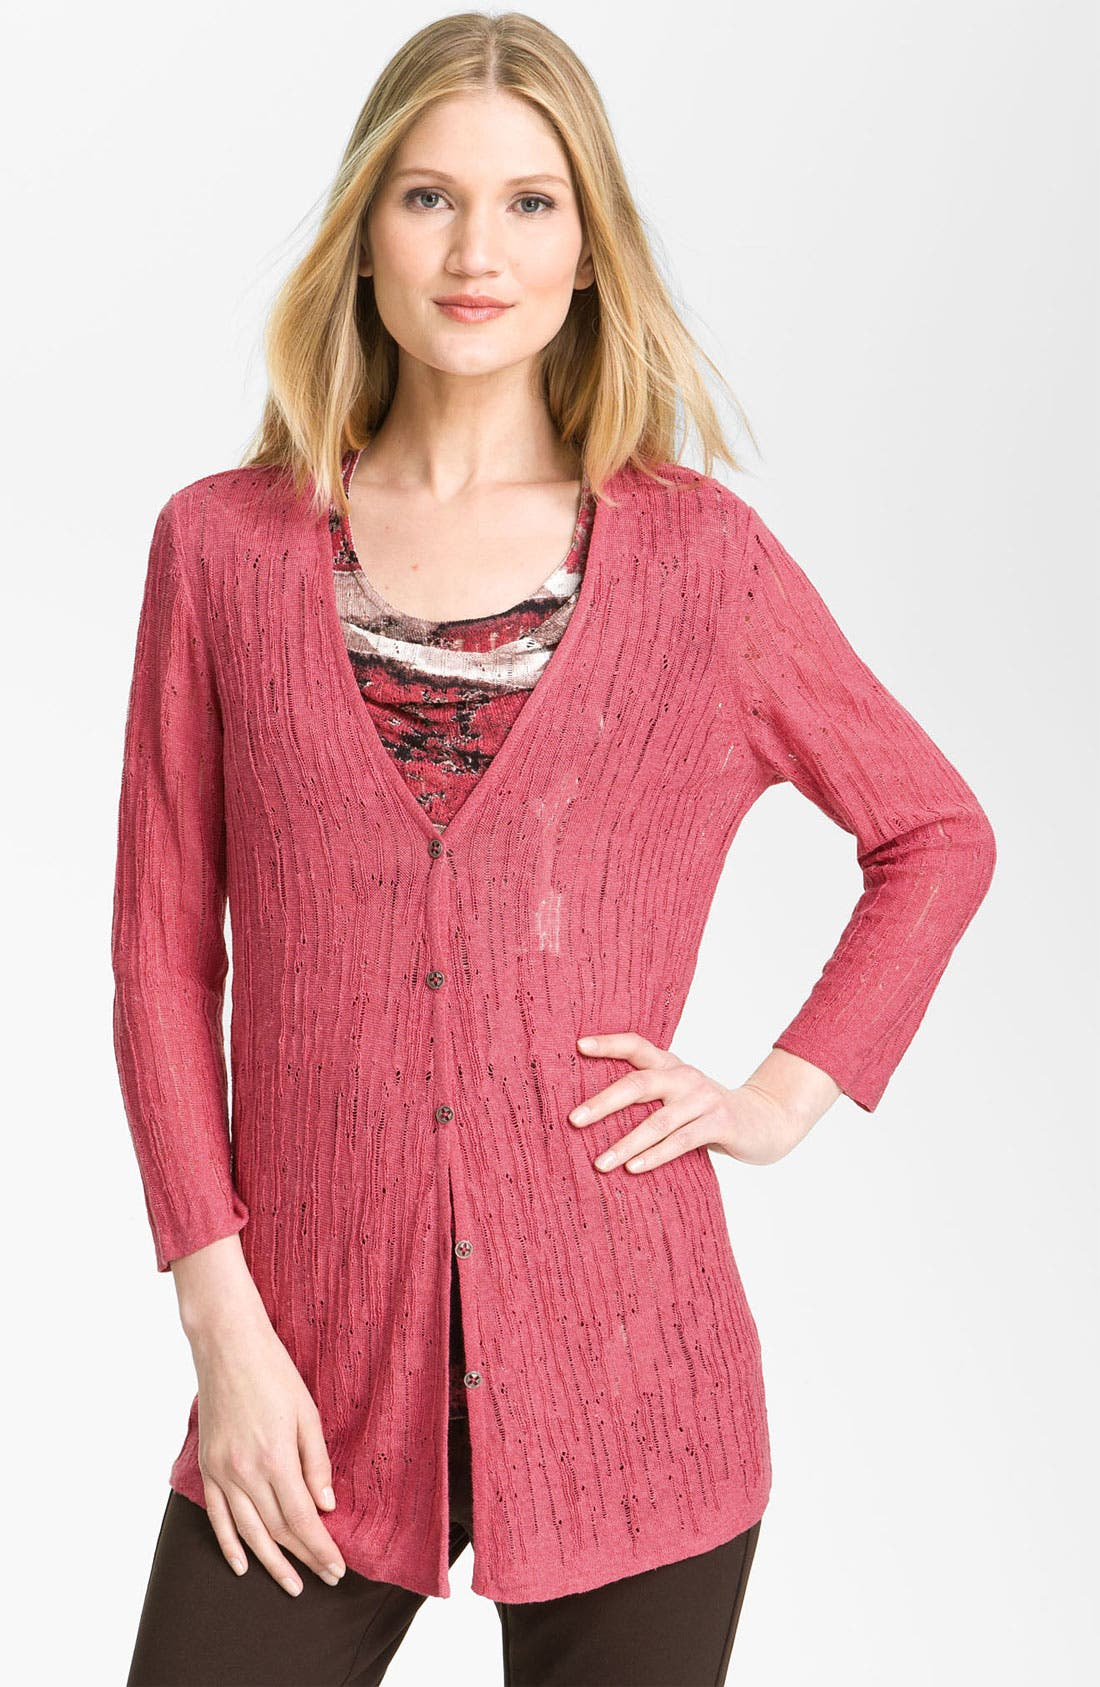 Alternate Image 1 Selected - Nic + Zoe Drop Stitch Knit Cardigan